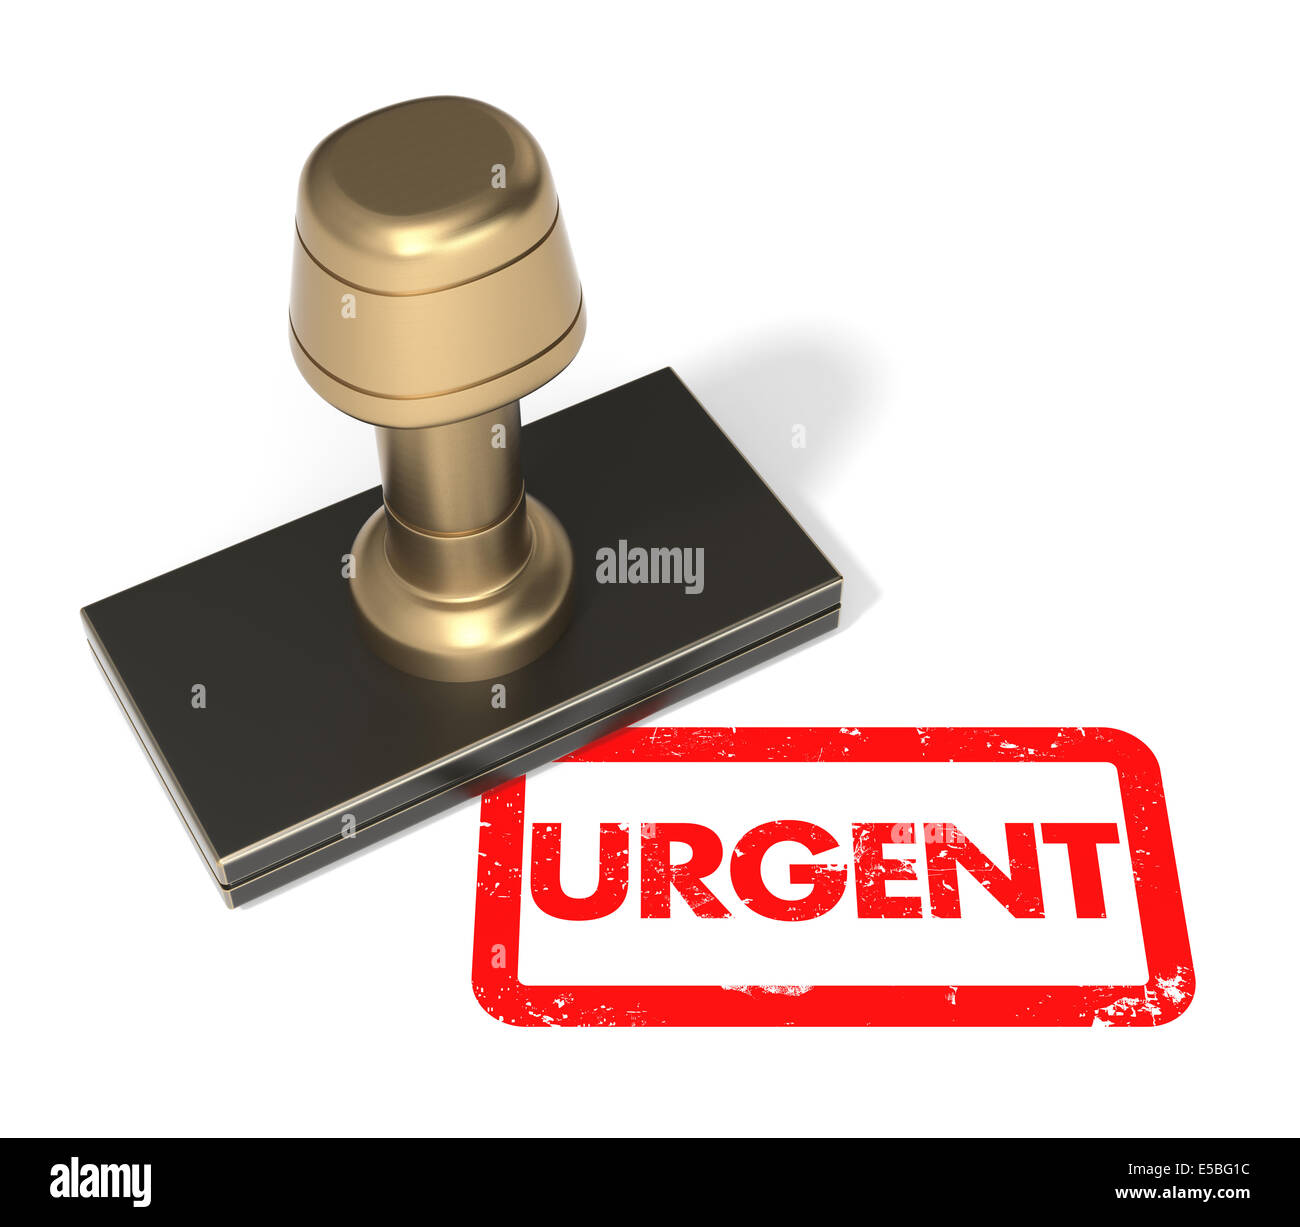 Urgent Rubber Stamp - Stock Image